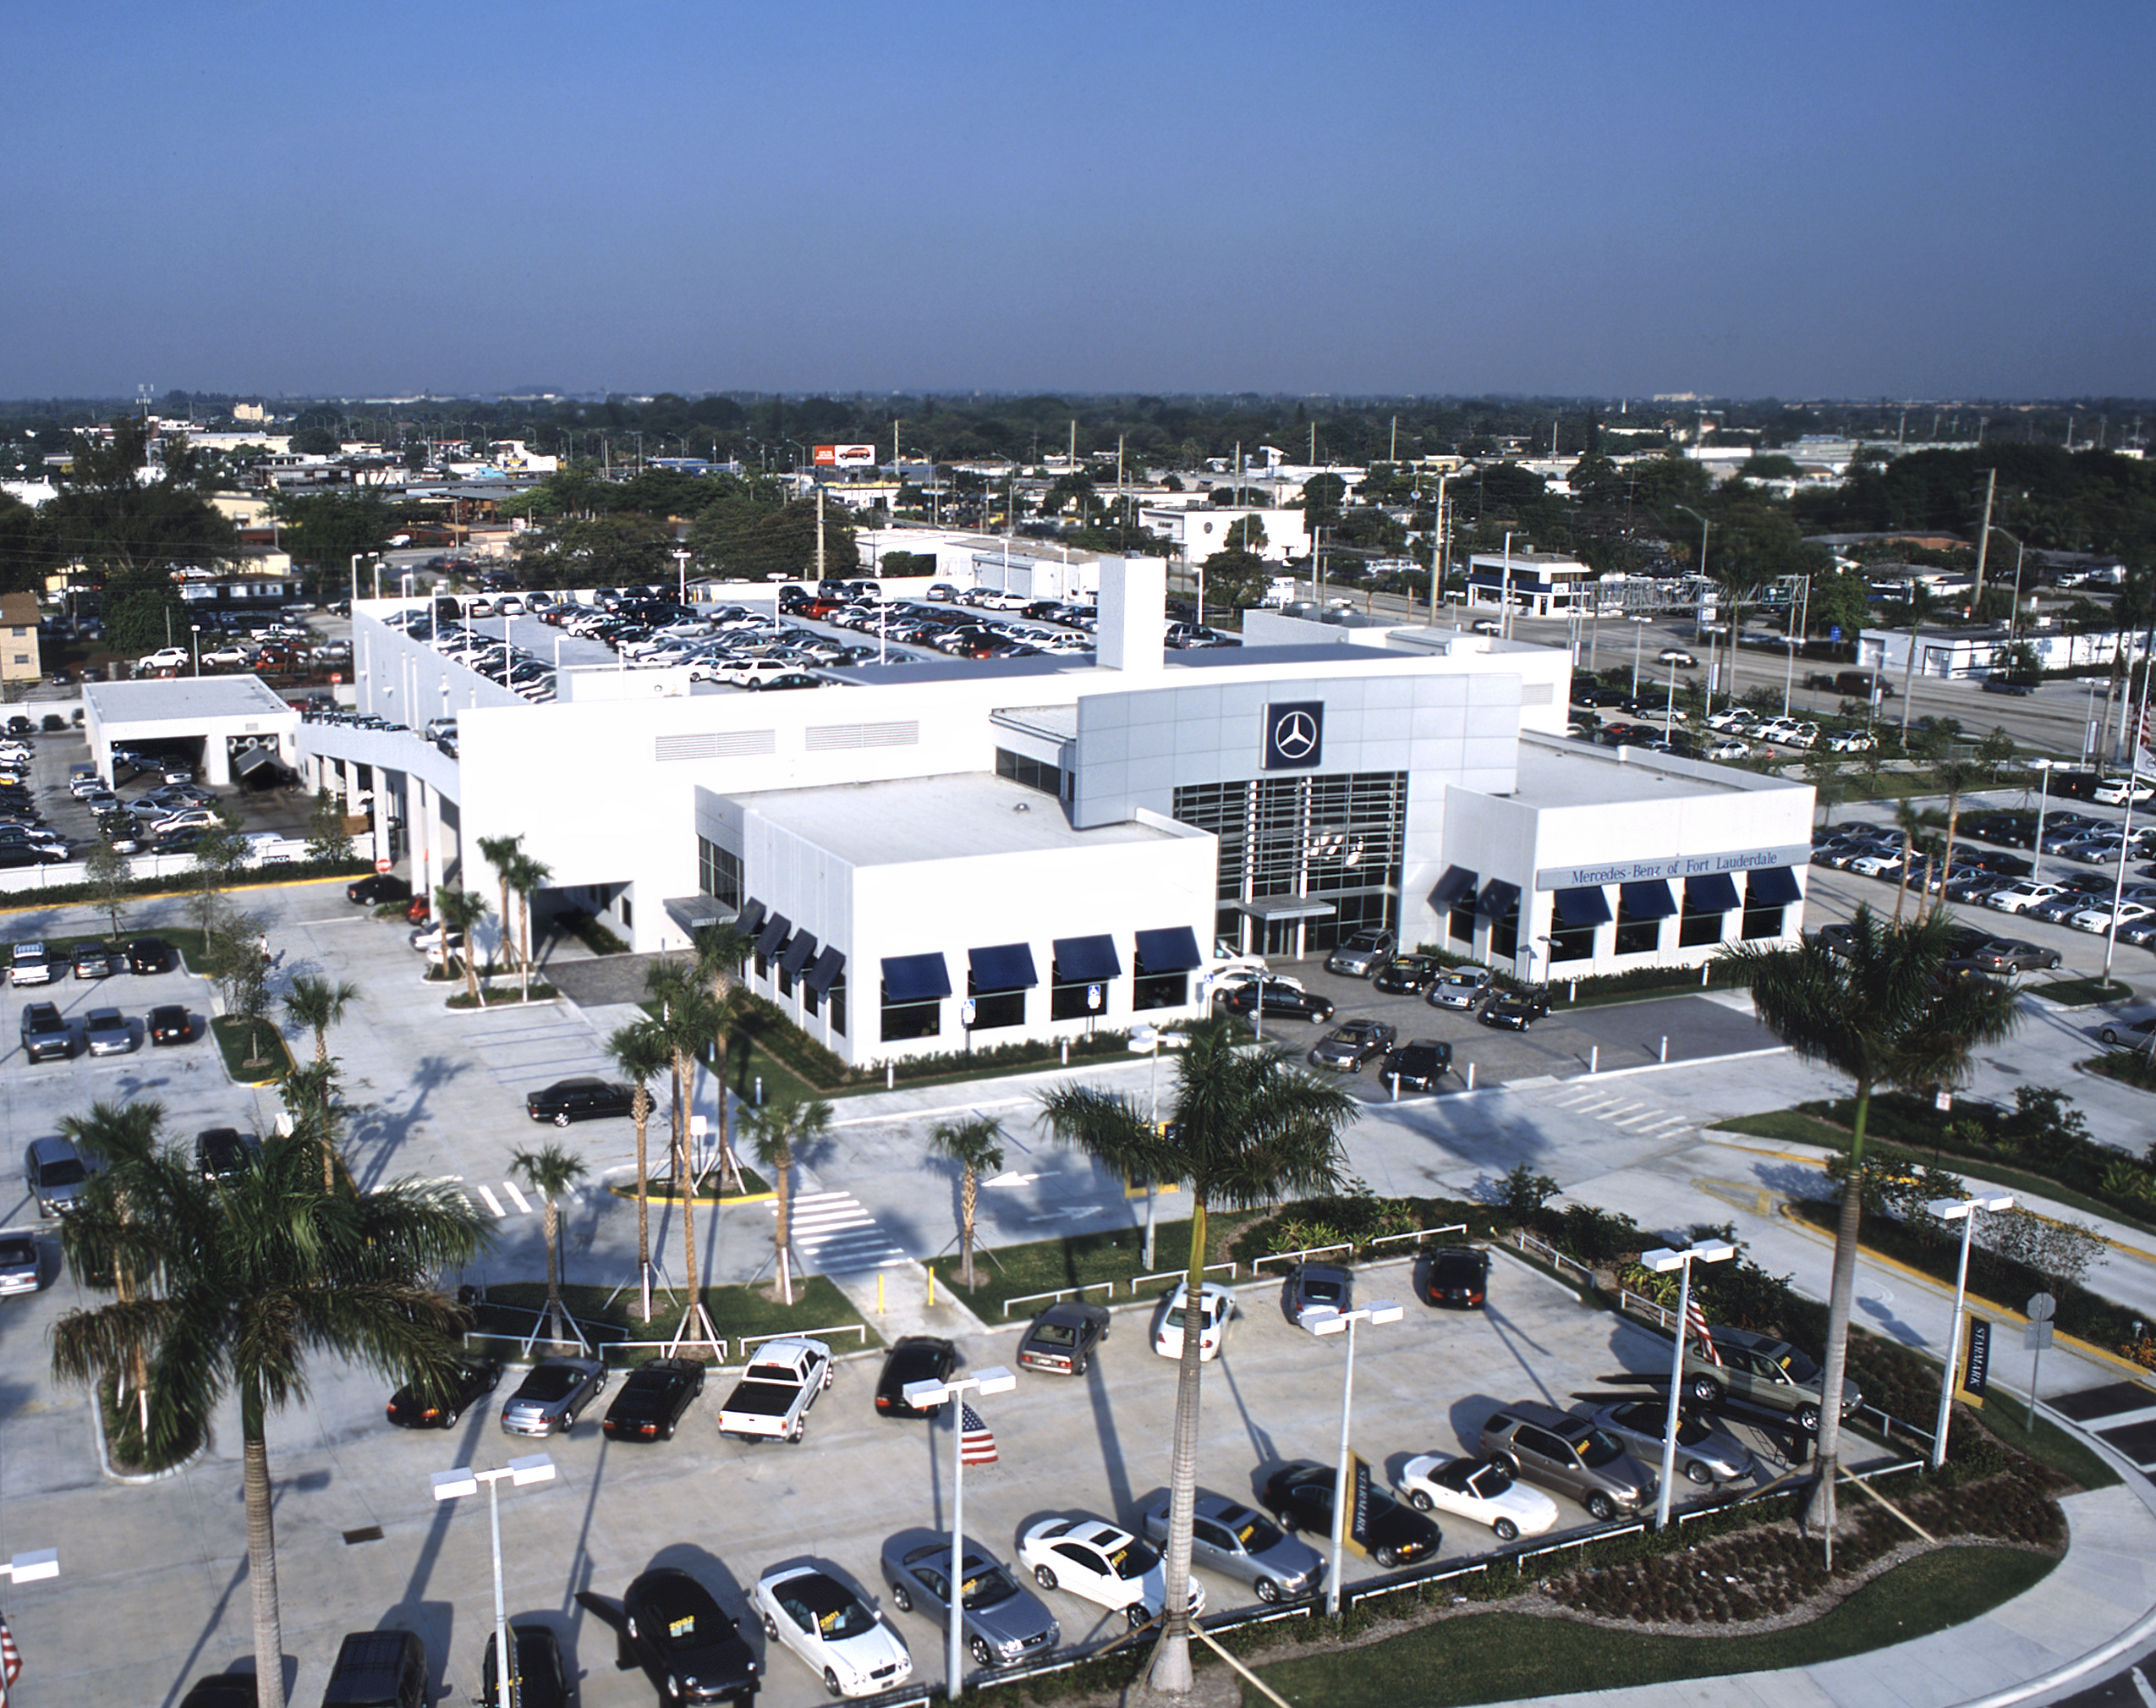 Auto dealerships coreslab structures coreslab structures for Mercedes benz dealership locations